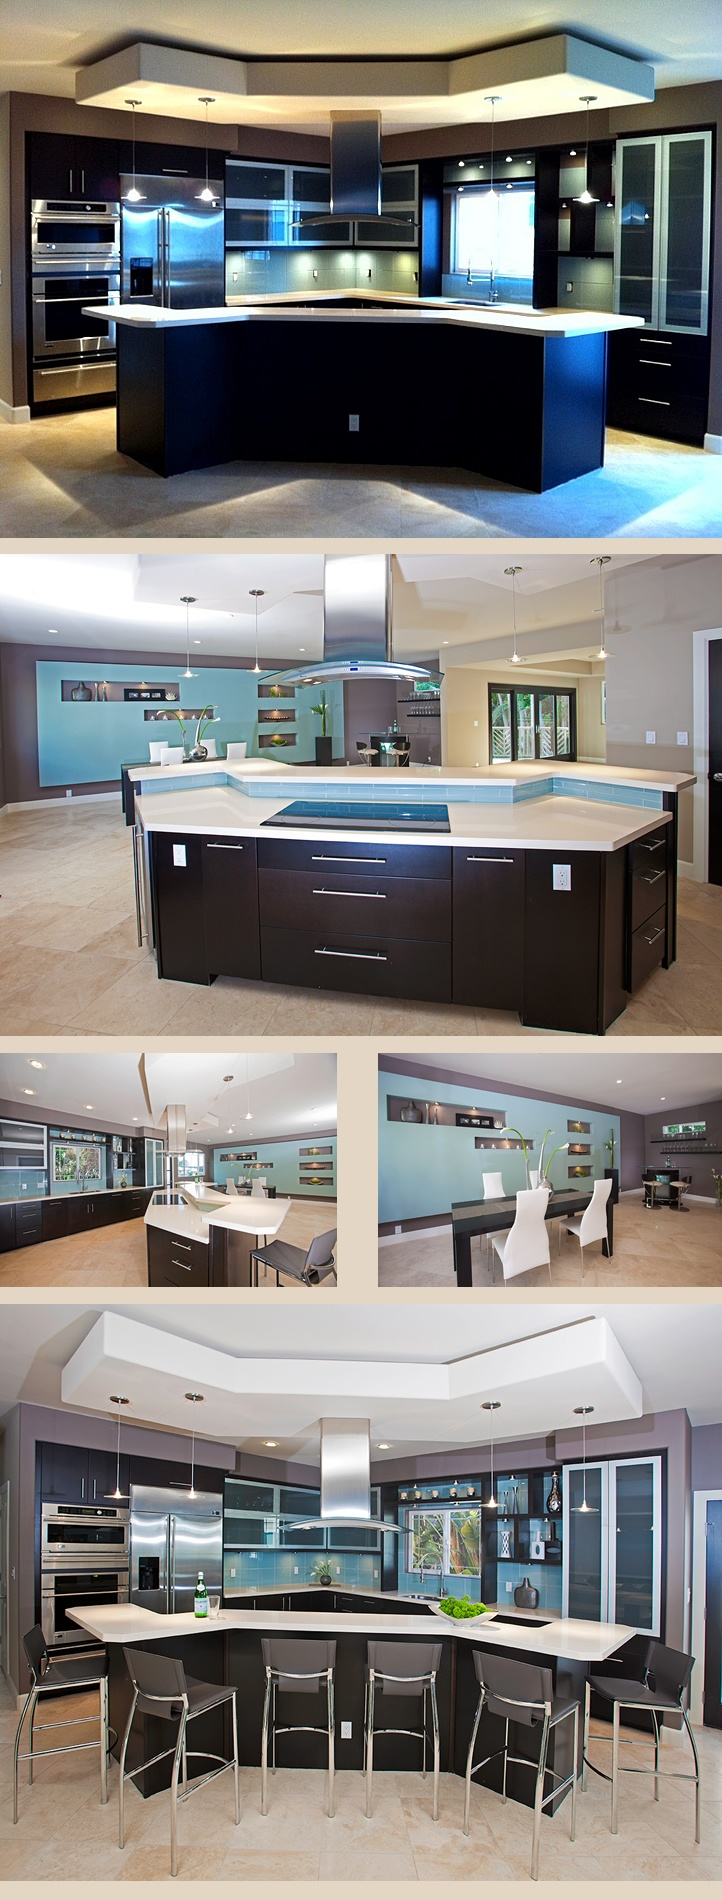 Love the blues - cool kitchen overall.